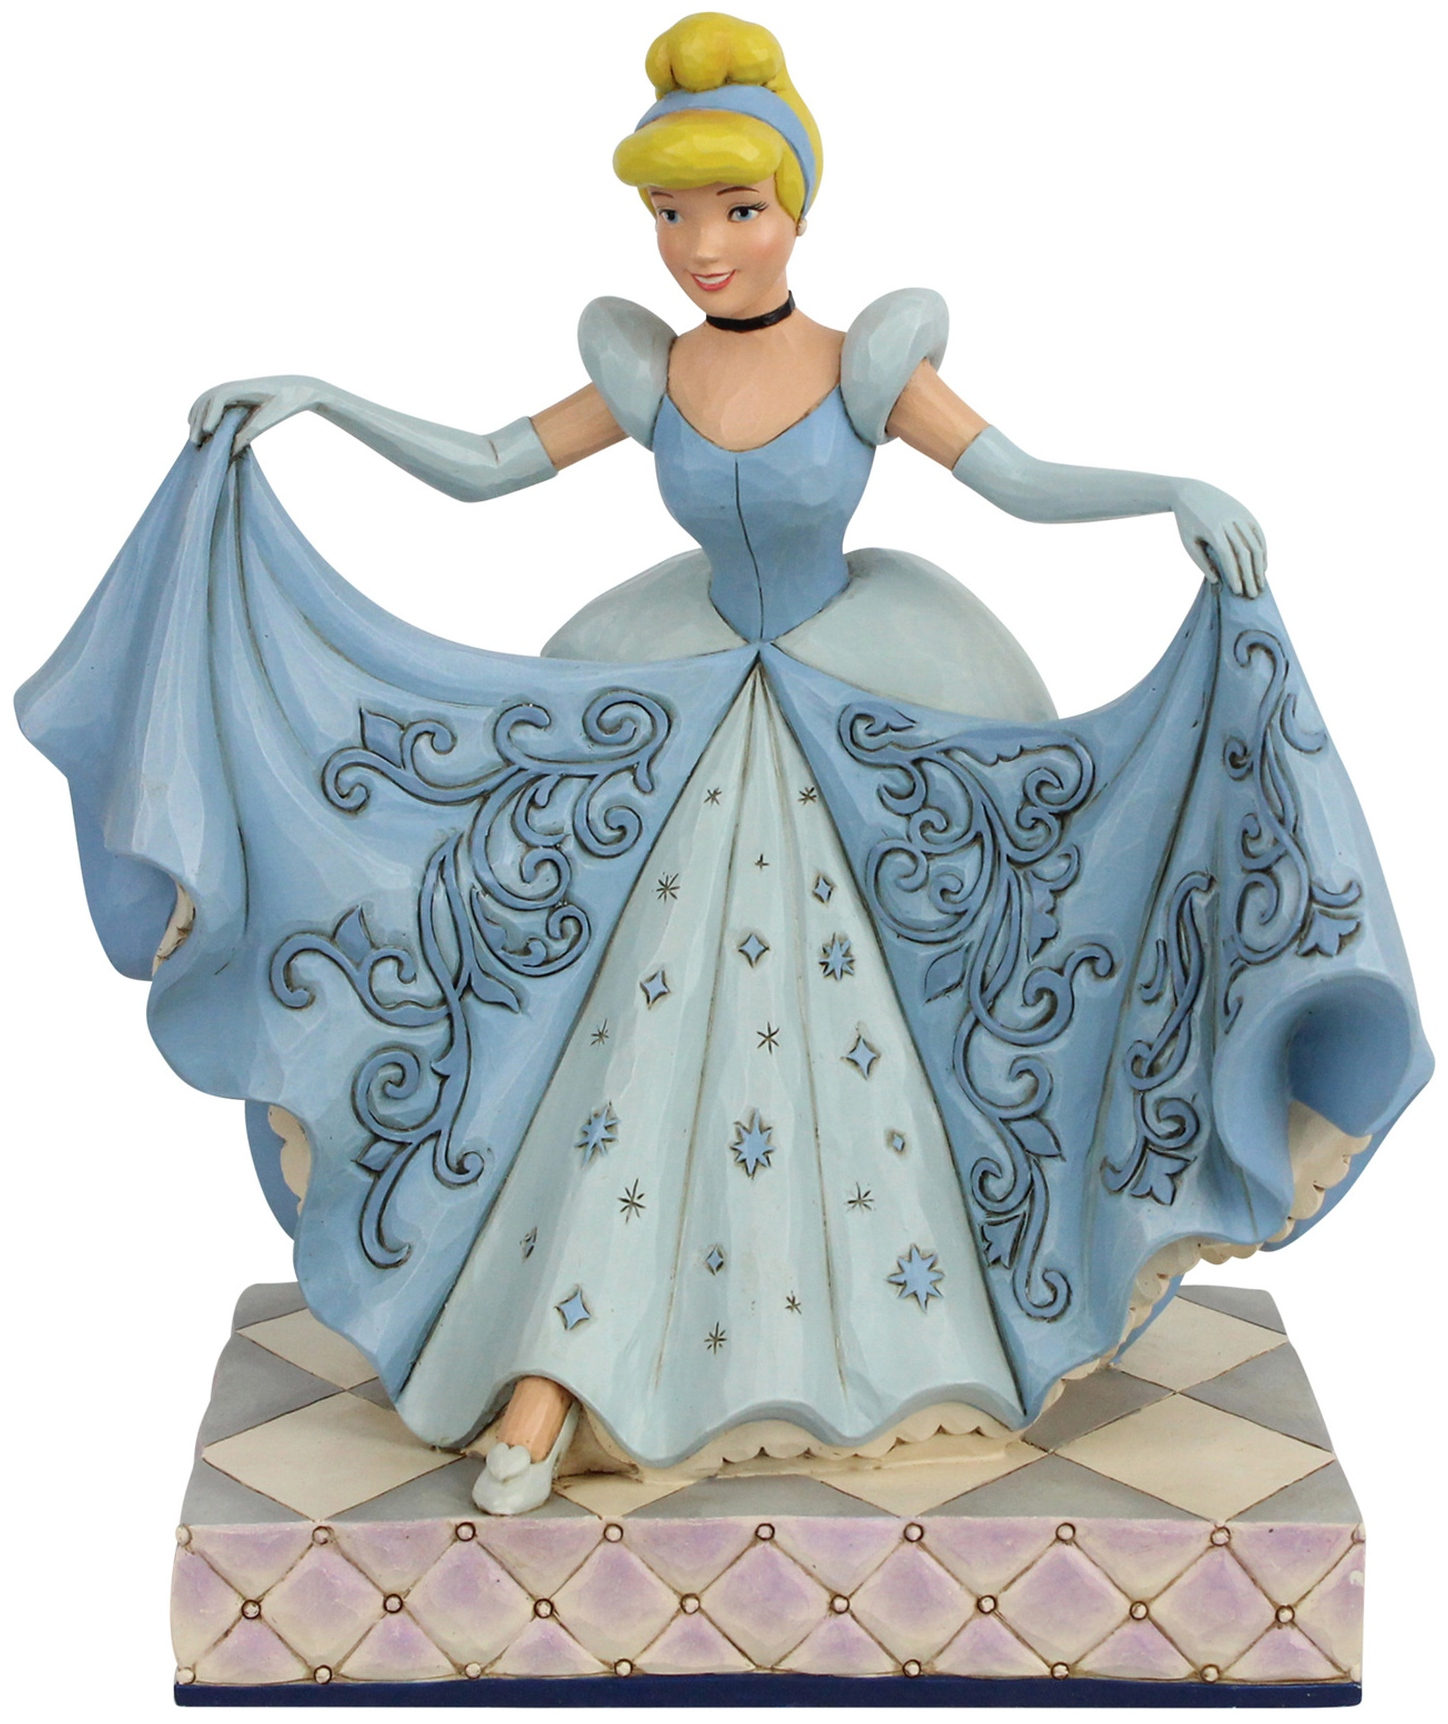 Disney Traditions by Jim Shore 6007054N Cinderella Transformation Figurine